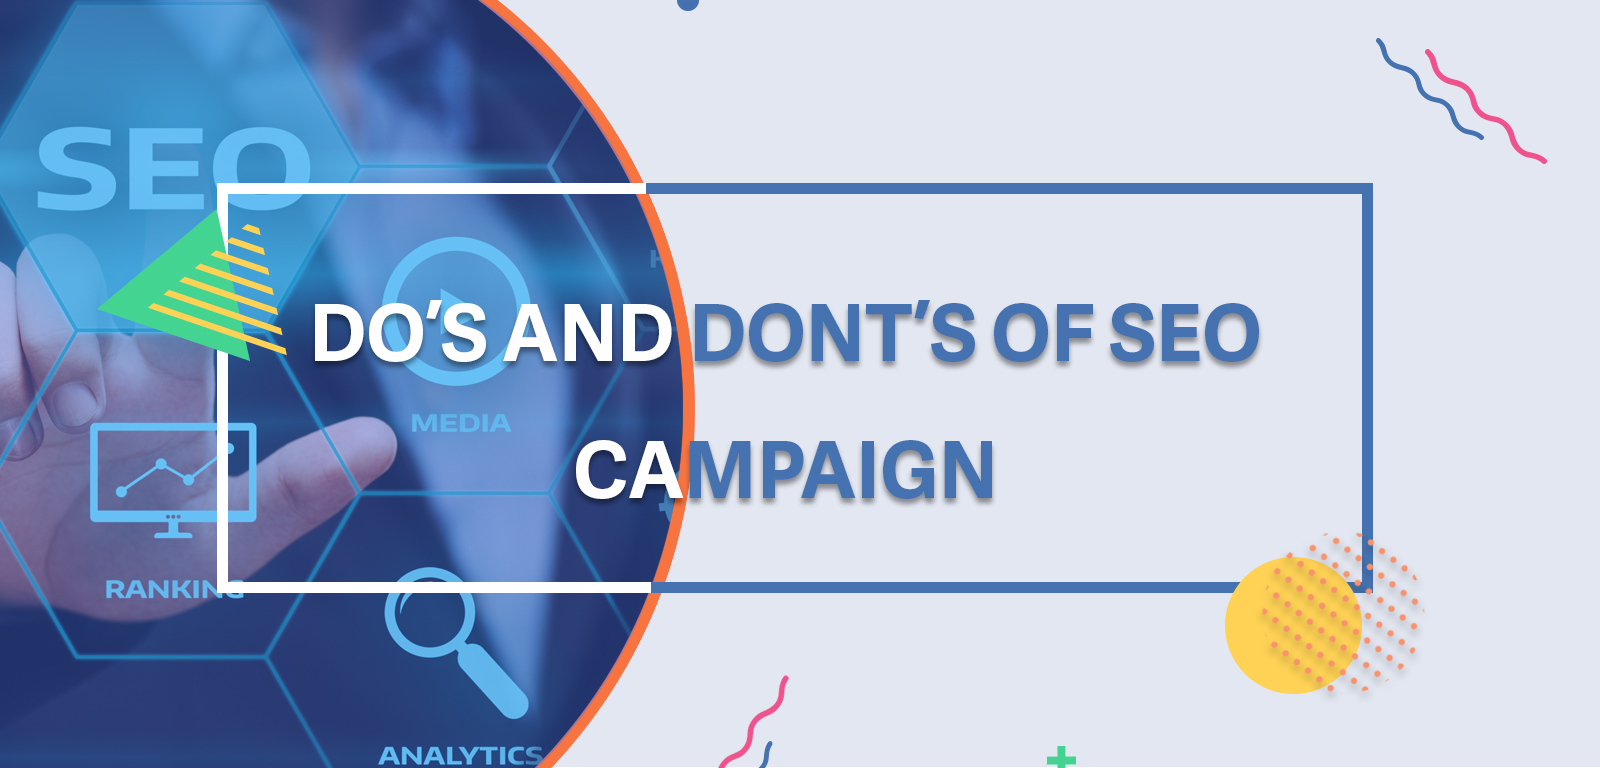 DO'S AND DONT'S OF SEO CAMPAIGN